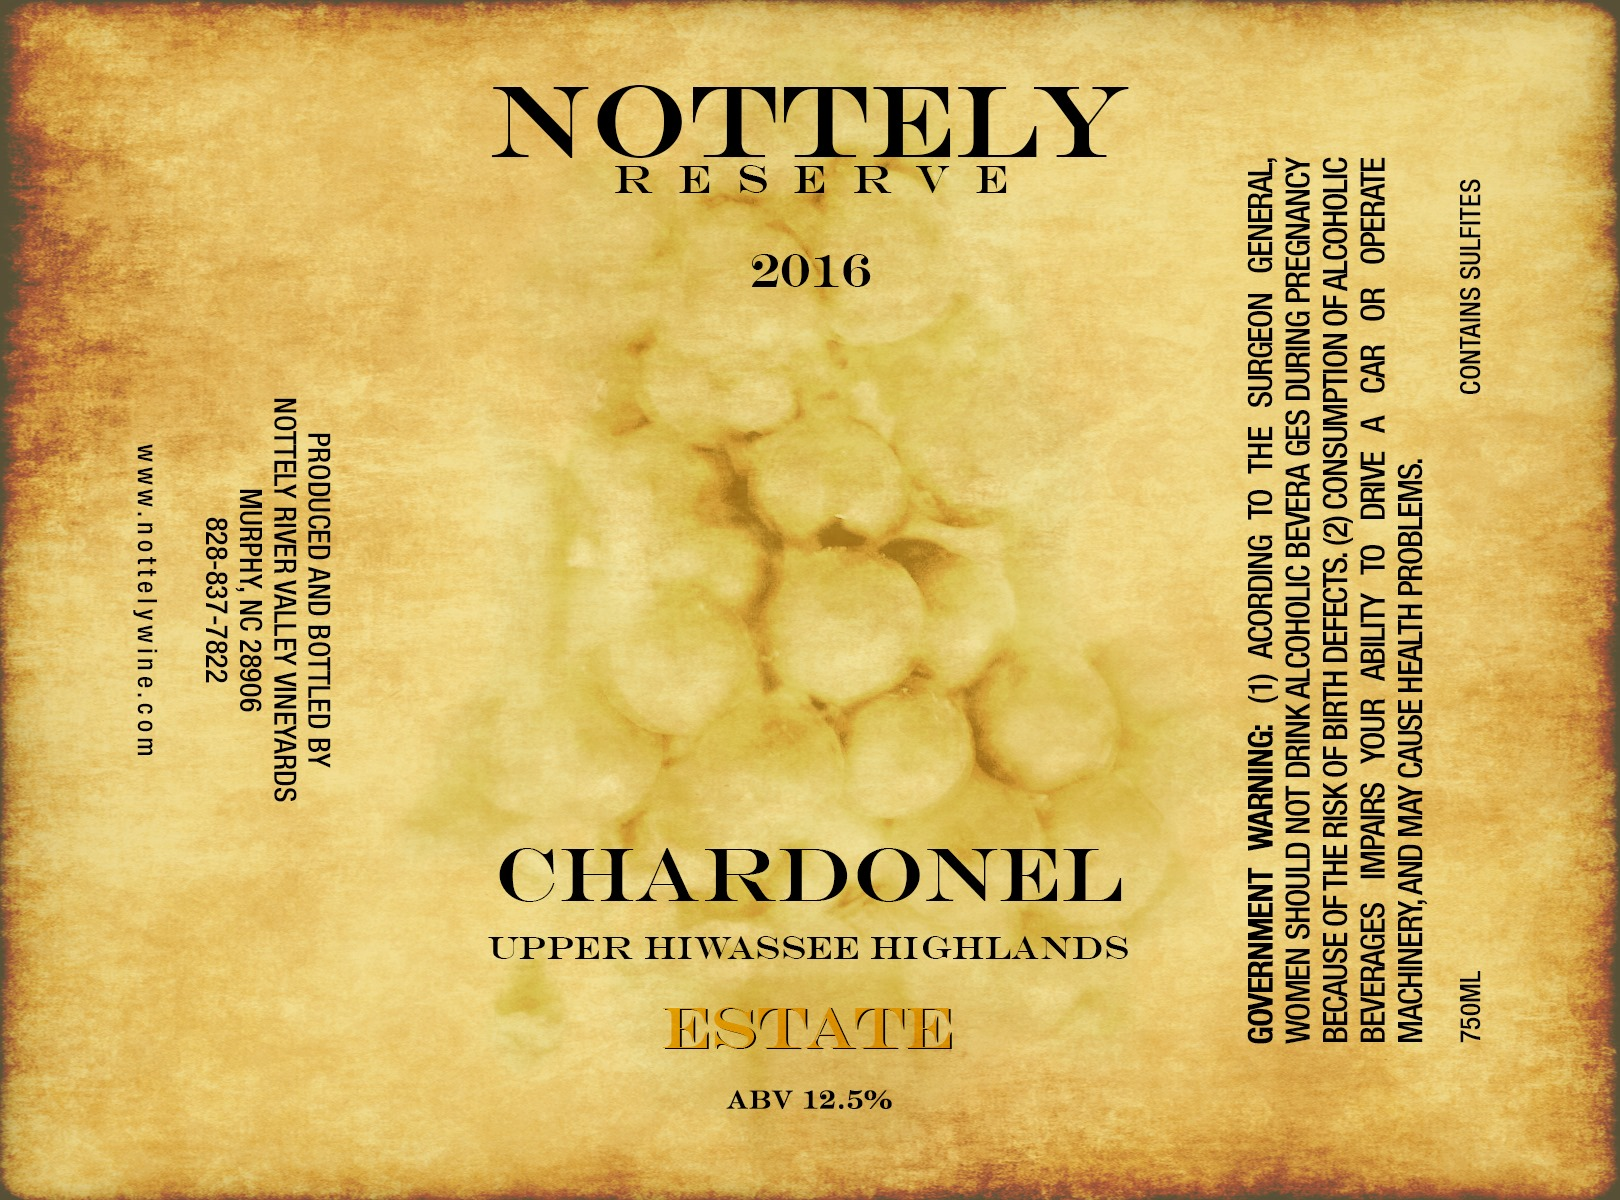 2016 CHARDONEL - Nottely River Valley Vineyards Release August 30, 2019